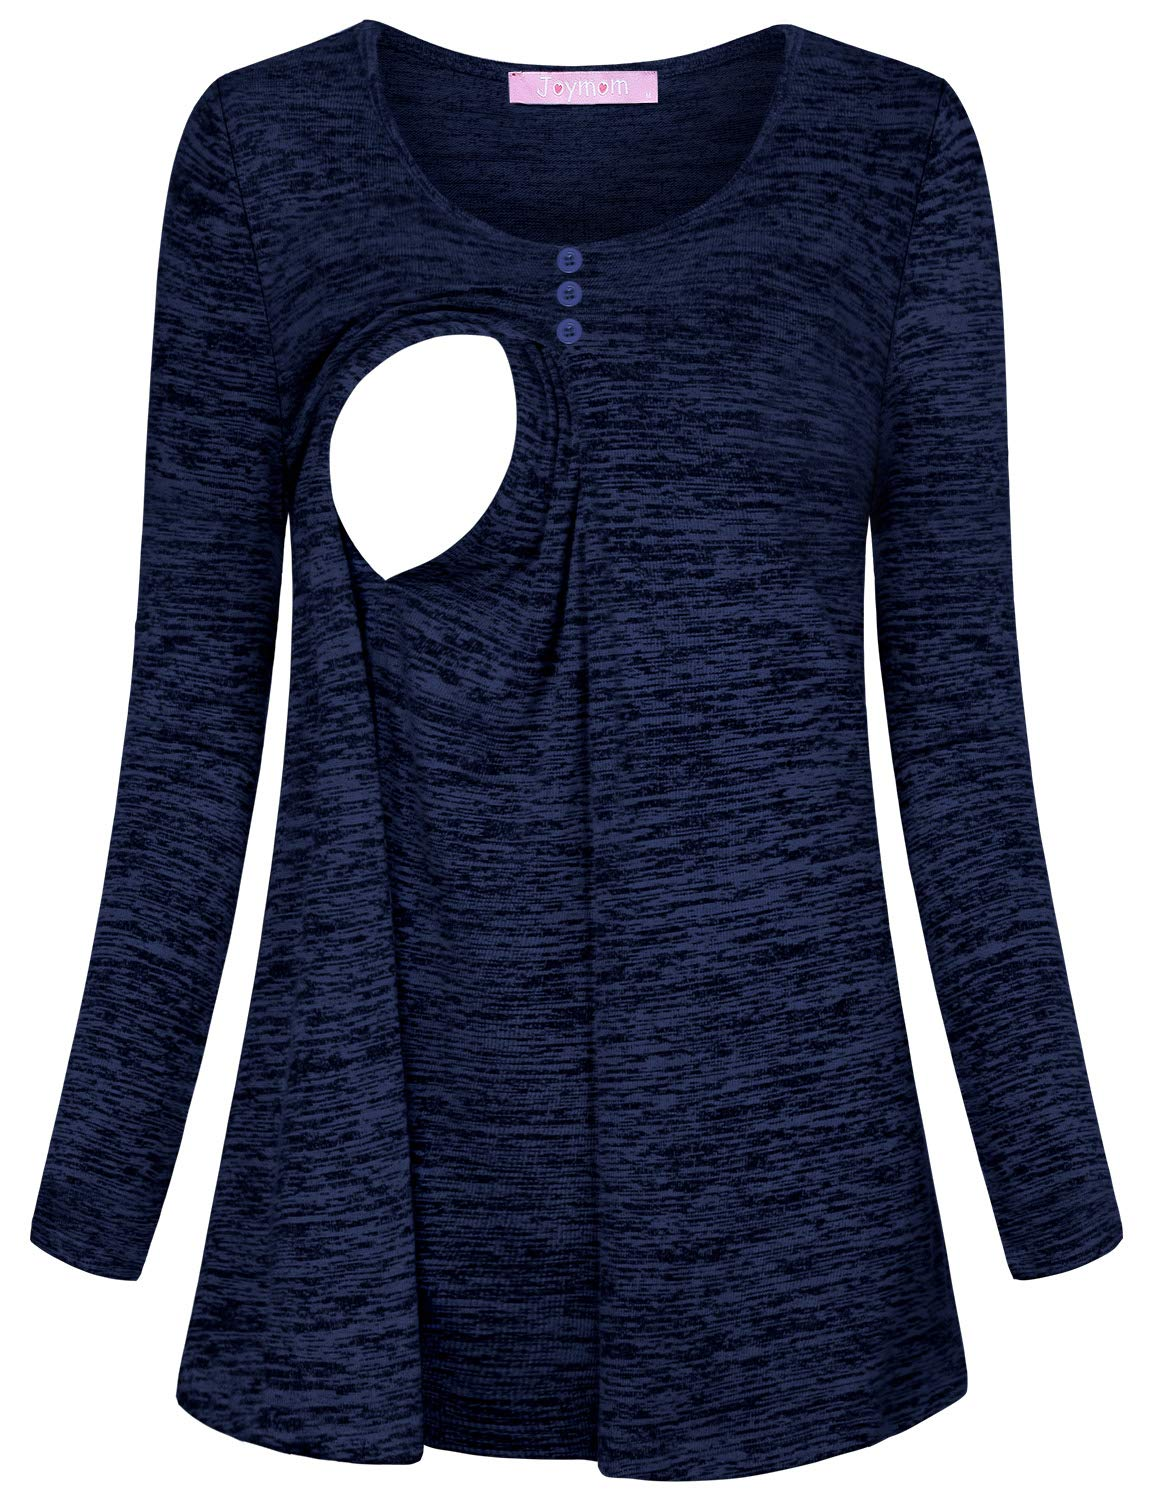 JOYMOM Breastfeeding Sweater,Fitted Maternity Tops Long Sleeve O Neck T-Shirt for Pregnant Women Solid Color Ruffled Trapeze Nursing Clothes Postpartum Business Wear Blue Medium